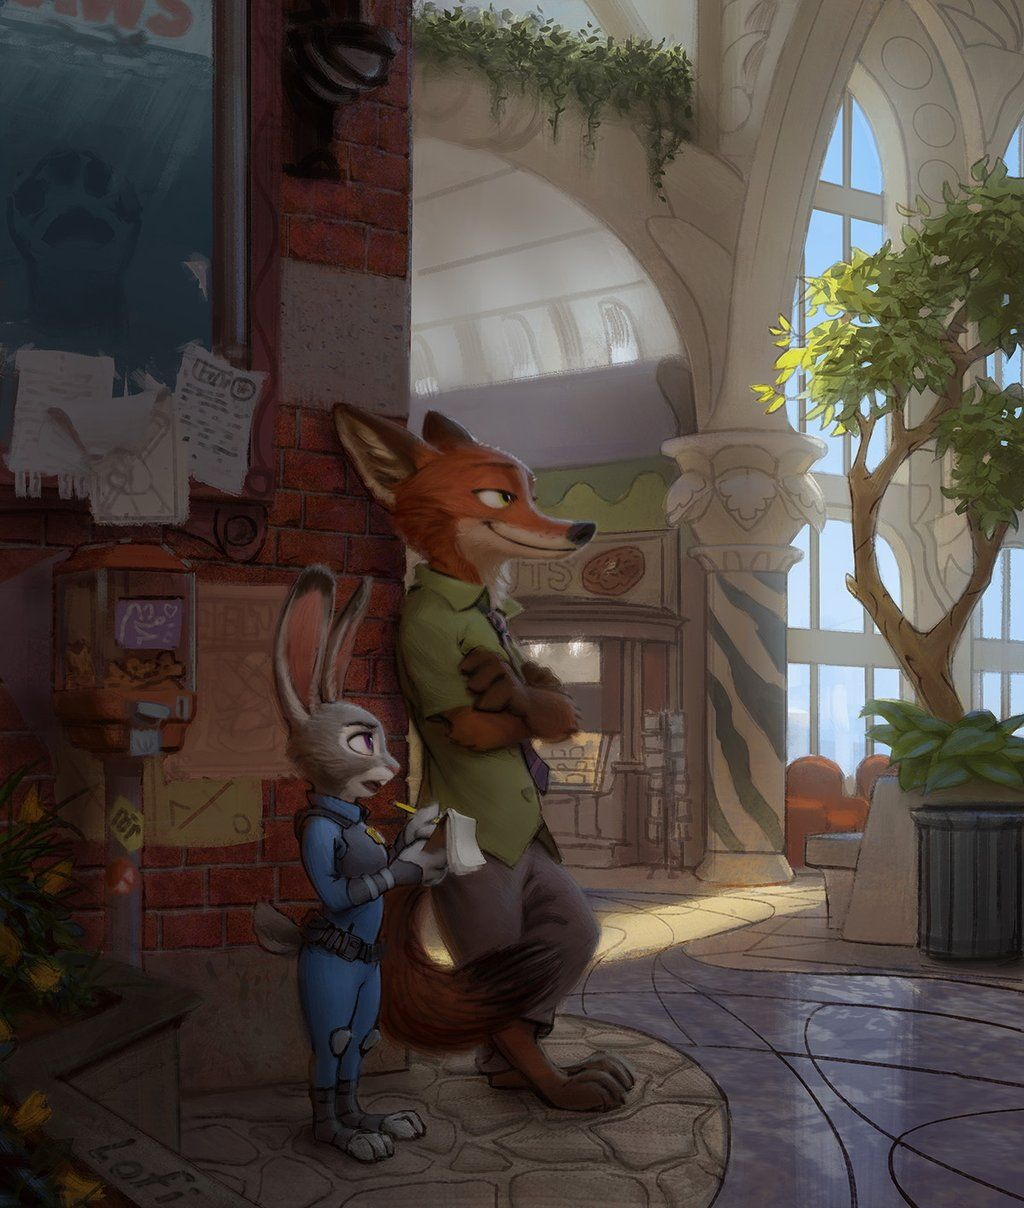 DIsney's Zootopia (2016) - A criminal jerk, meets police bunny. Nick Wilde and Judy Hopps Zootopia fanart by Lofi from Tweeter.. [ @loafyfloff ]